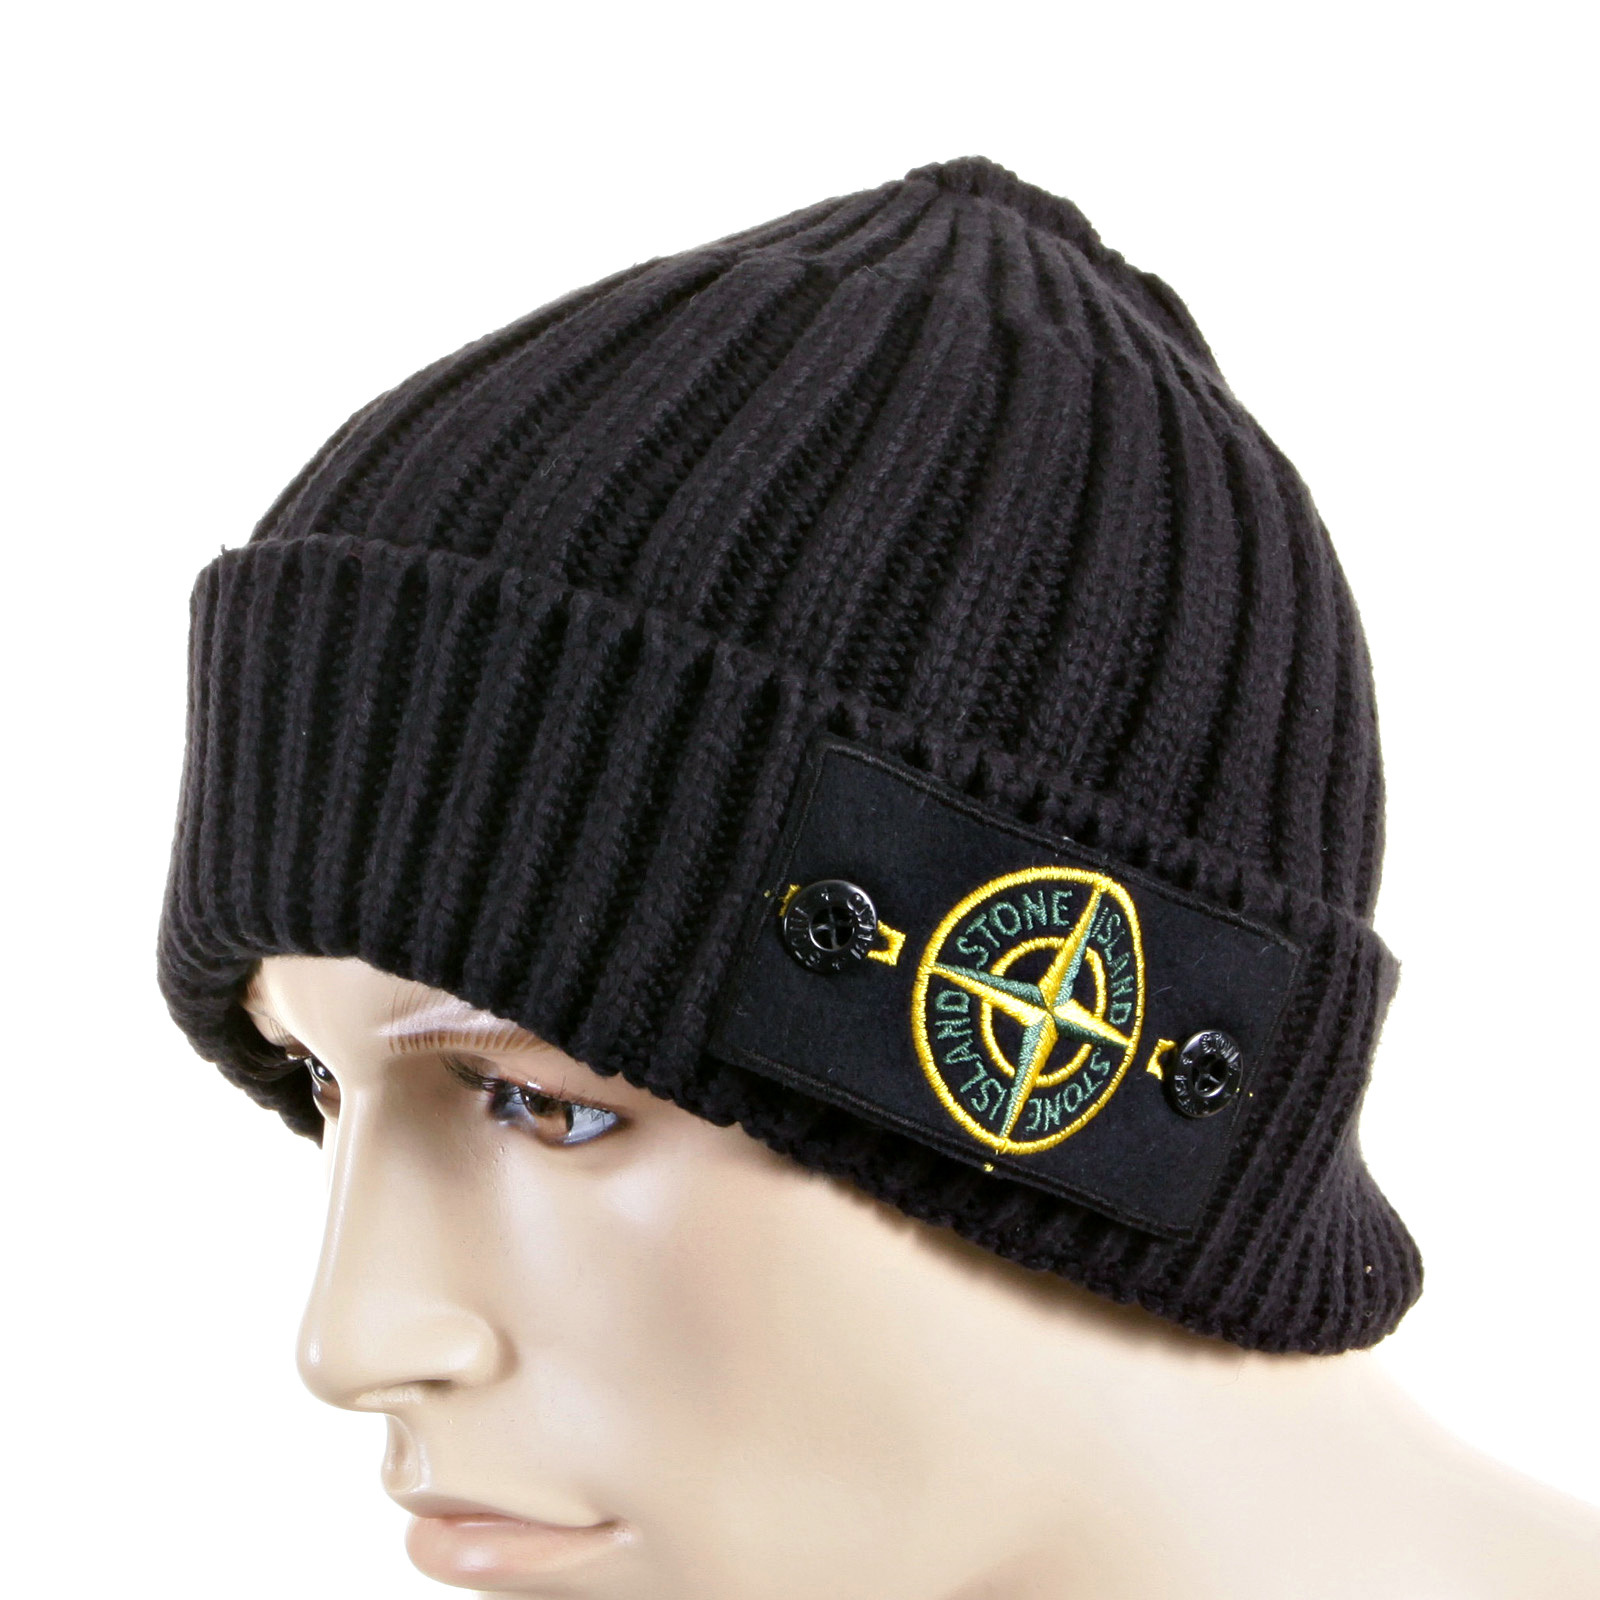 Stone Island Beanie Hat navy roll beanie hat 5515N01D5 SI2758 at Togged  Clothing 1f6c1e6e542